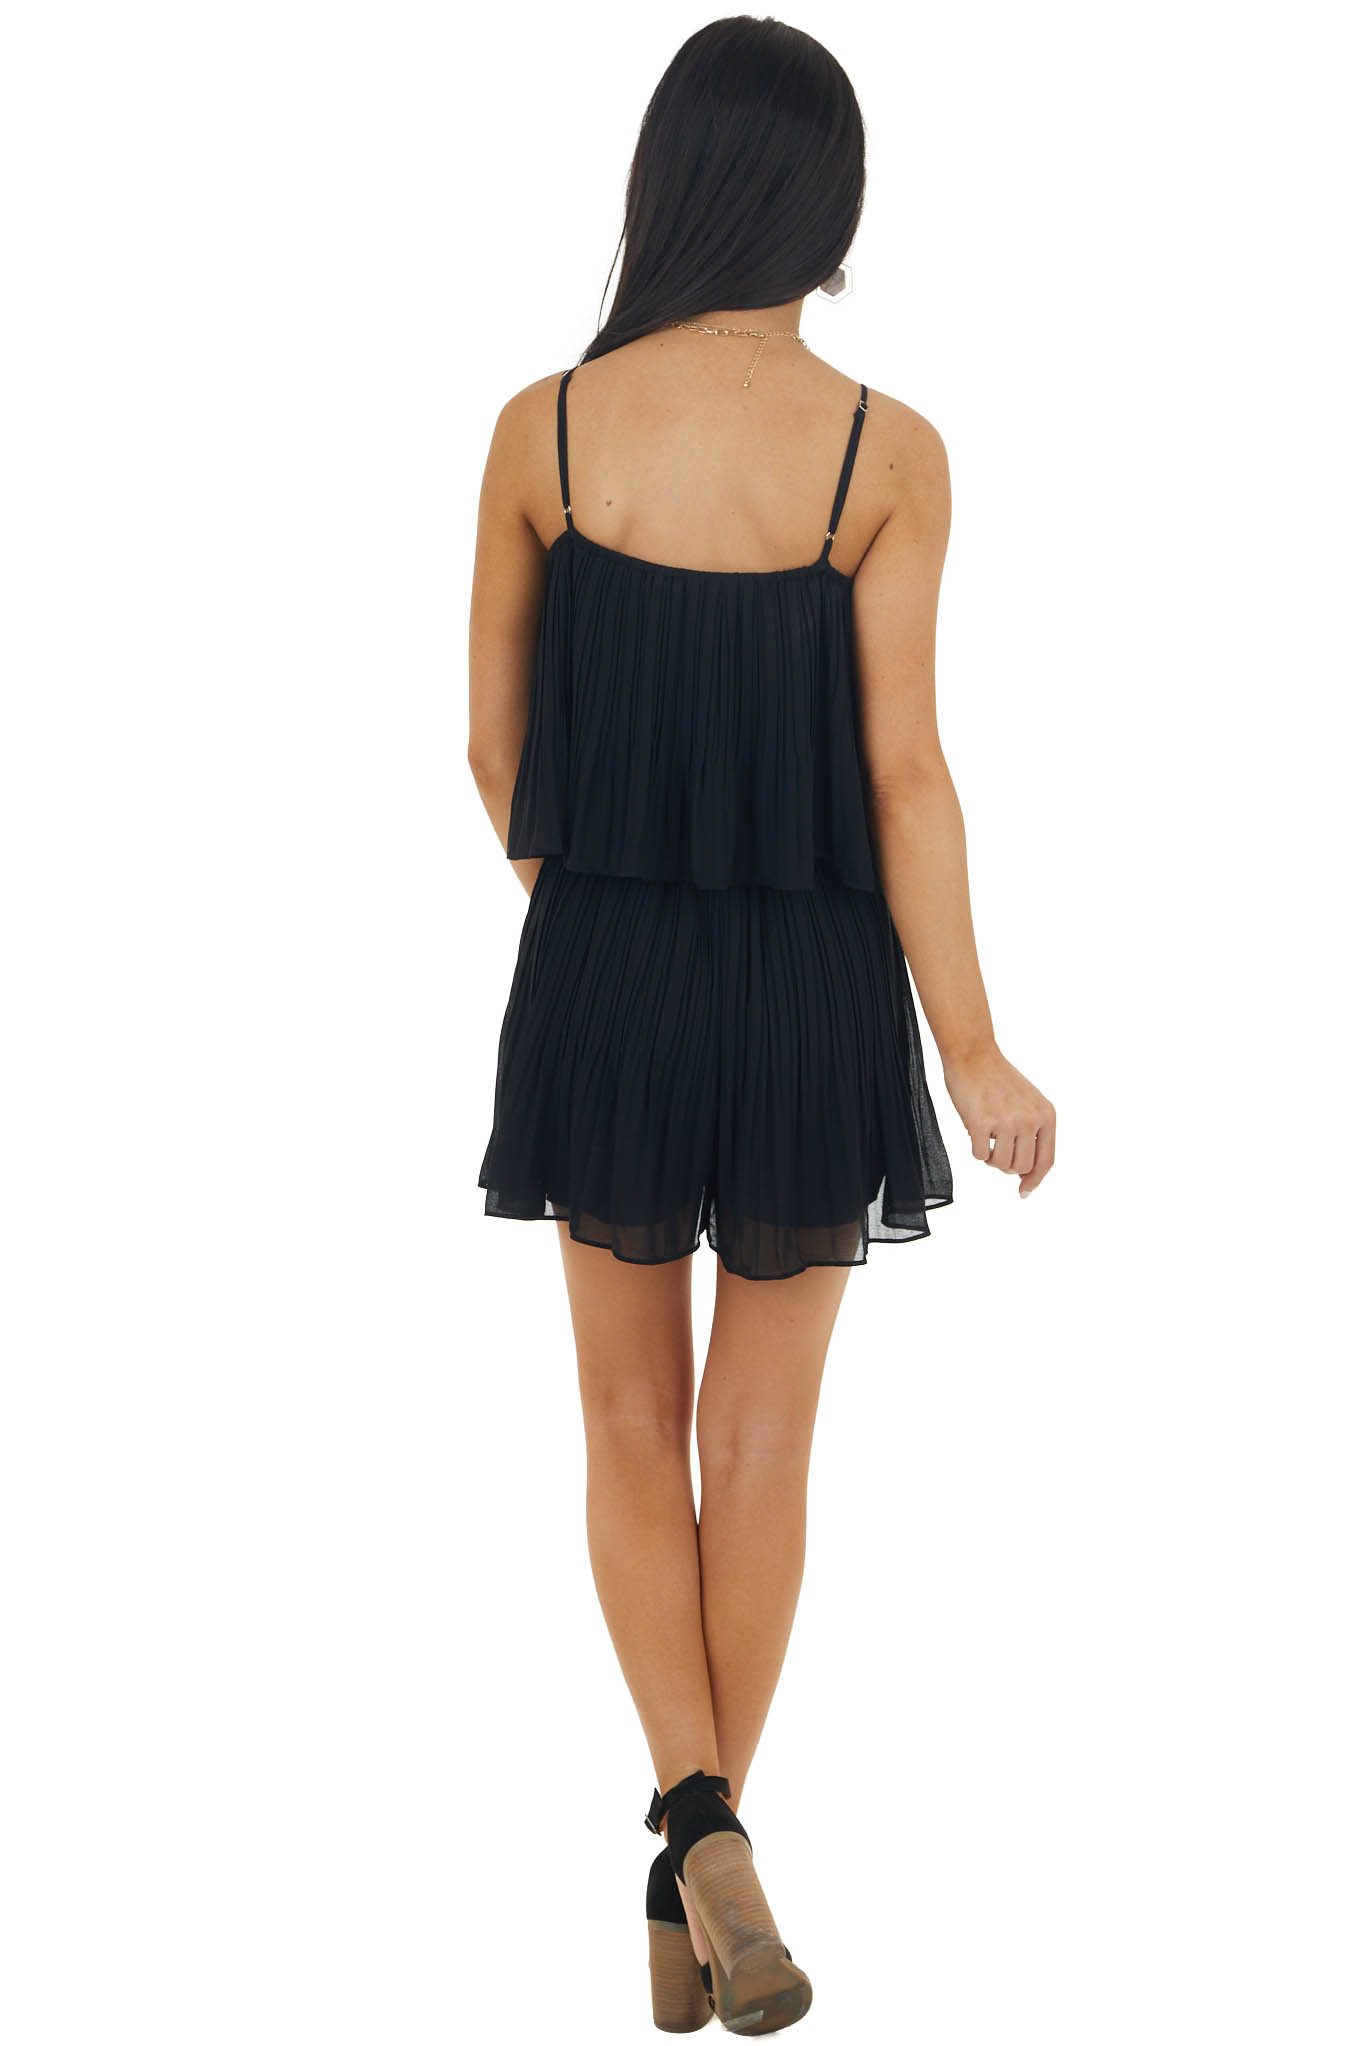 Black Sleeveless Pleated Overlaying Flowy Fitted Romper